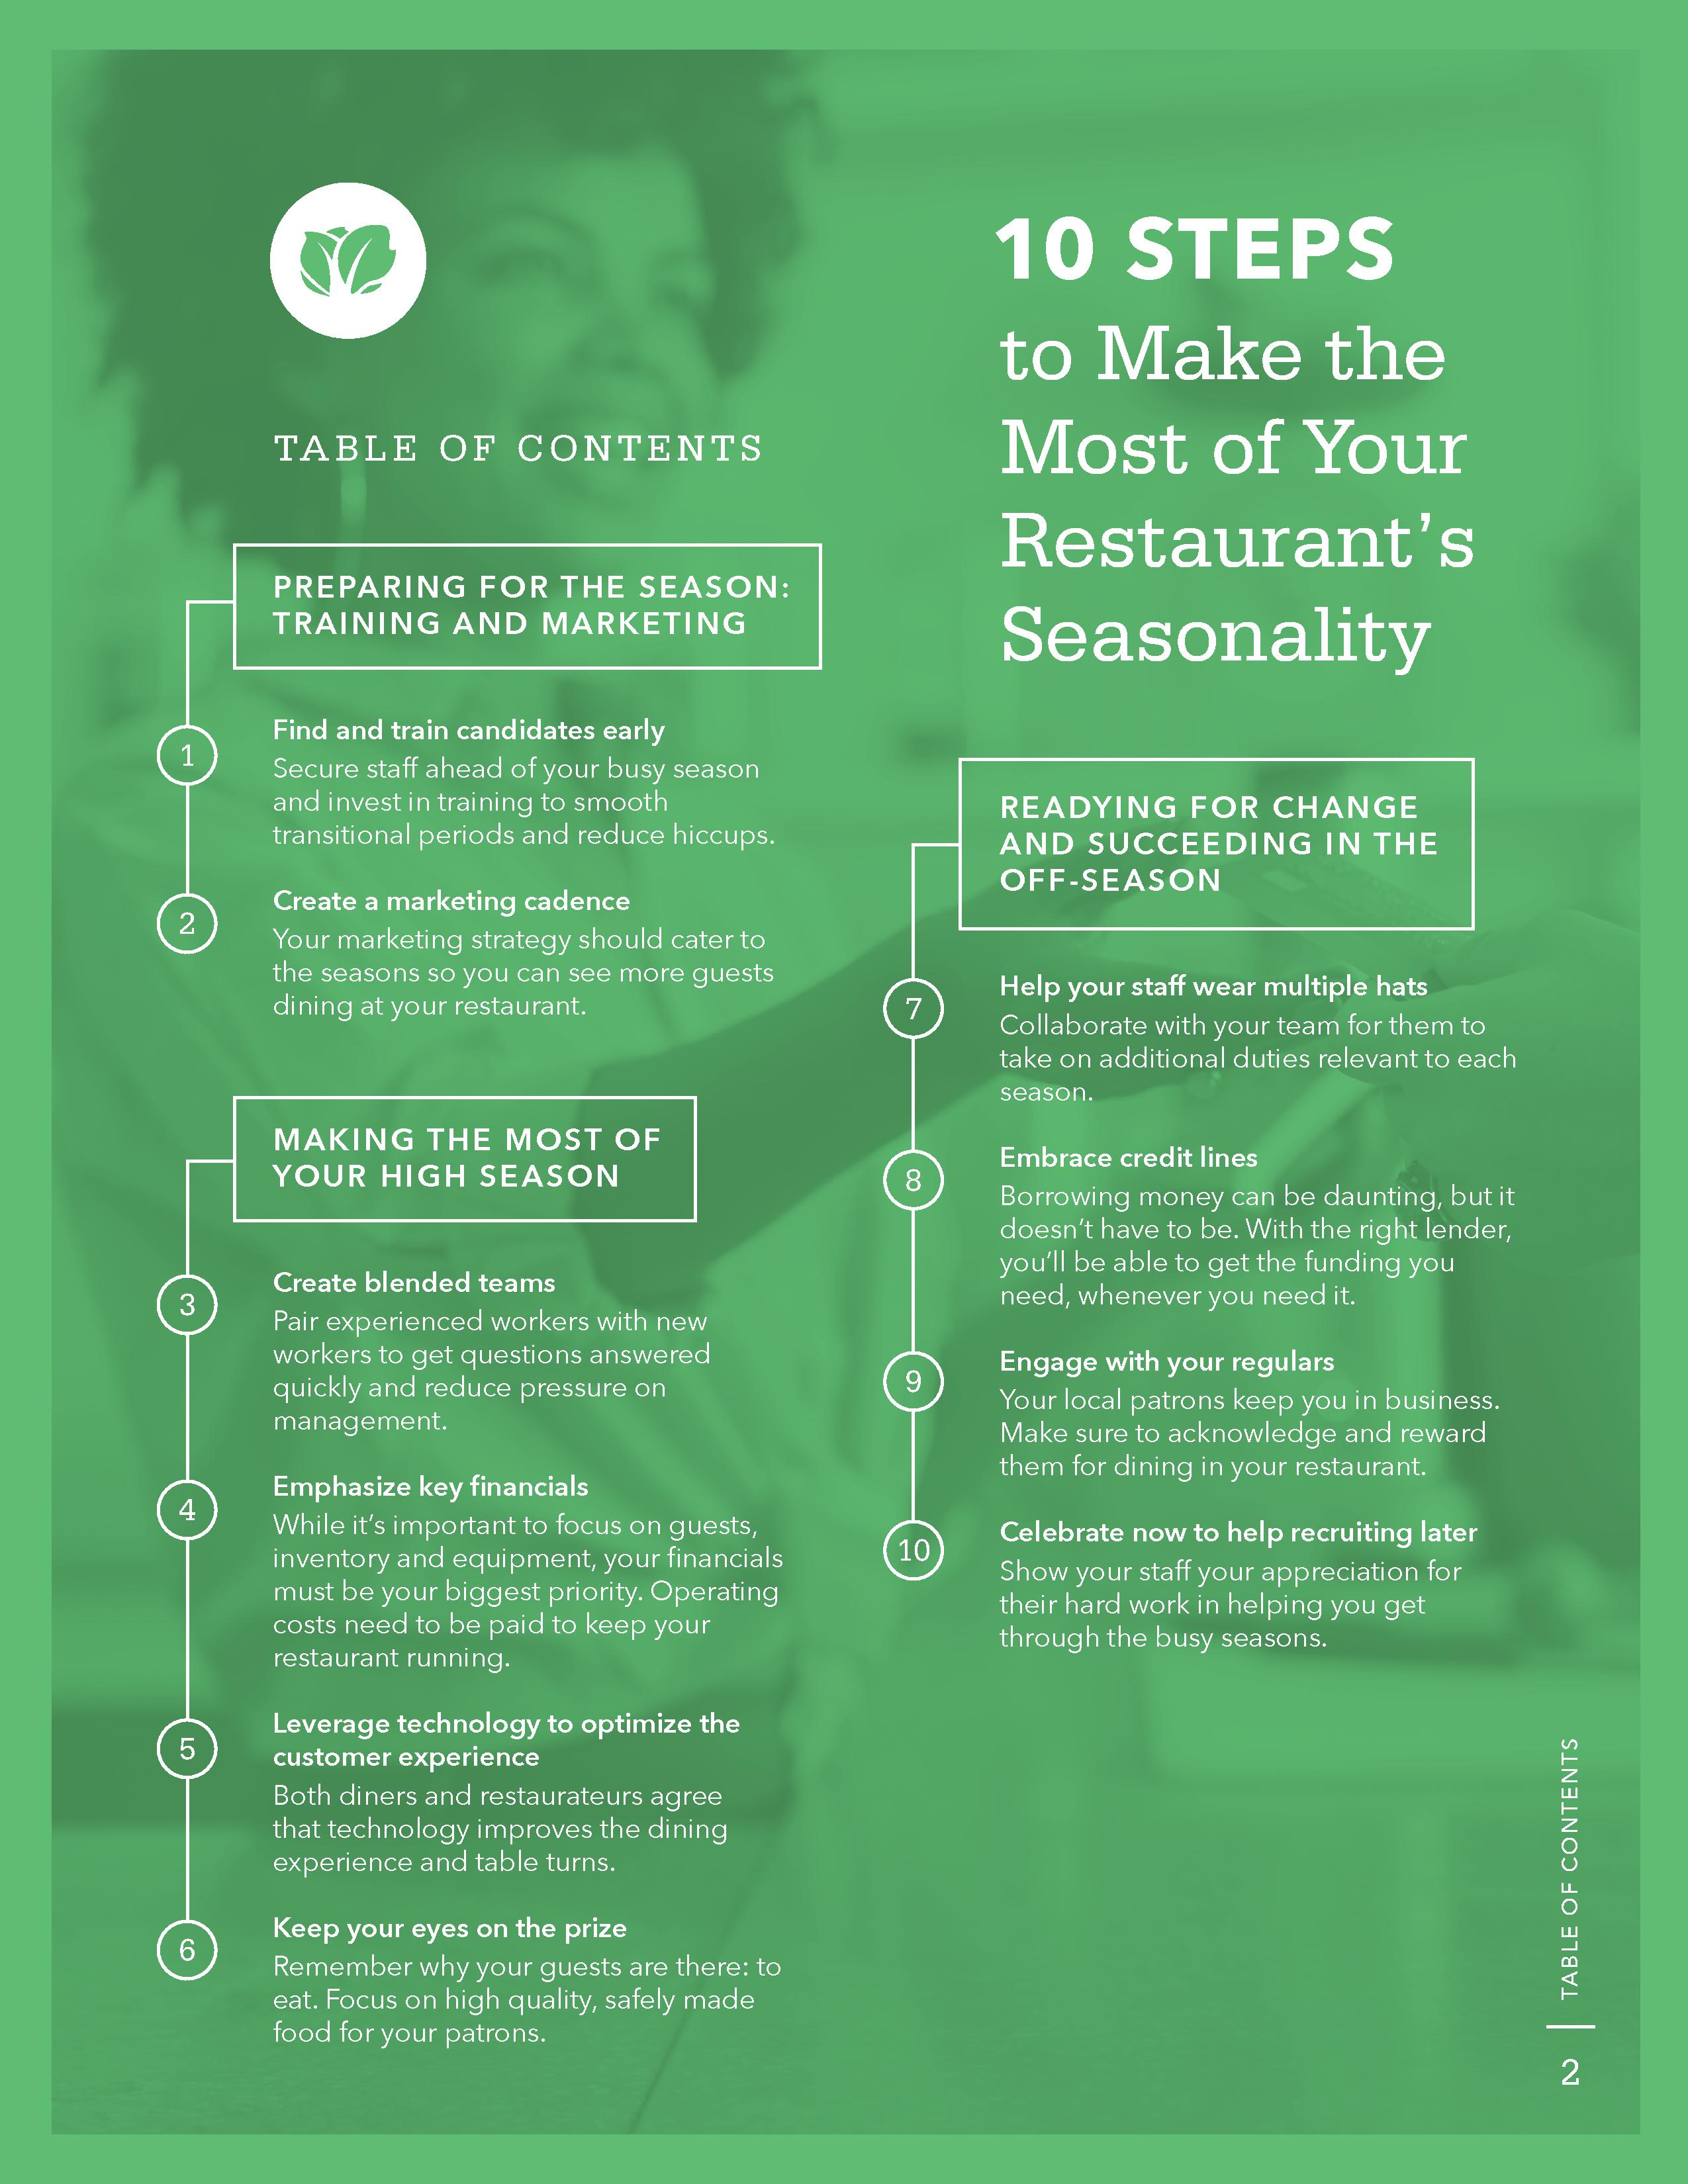 10 Steps to Make the Most of Your Restaurant's Seasonality